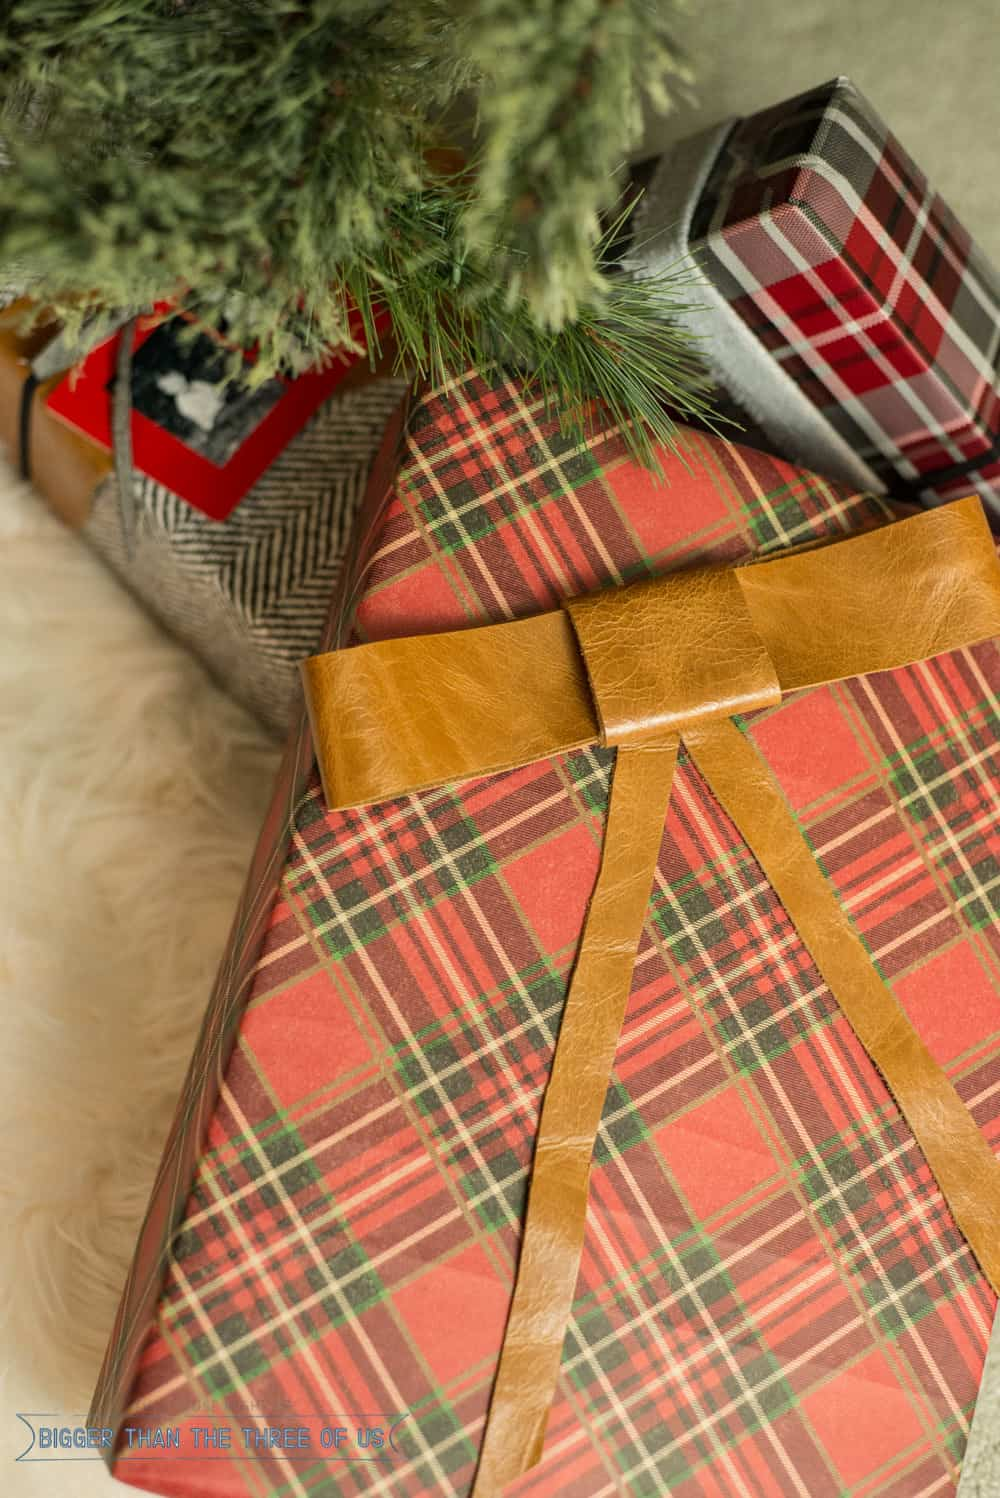 Trim-Your-Packages-for-Christmas-with-these-affordable-ideas-5